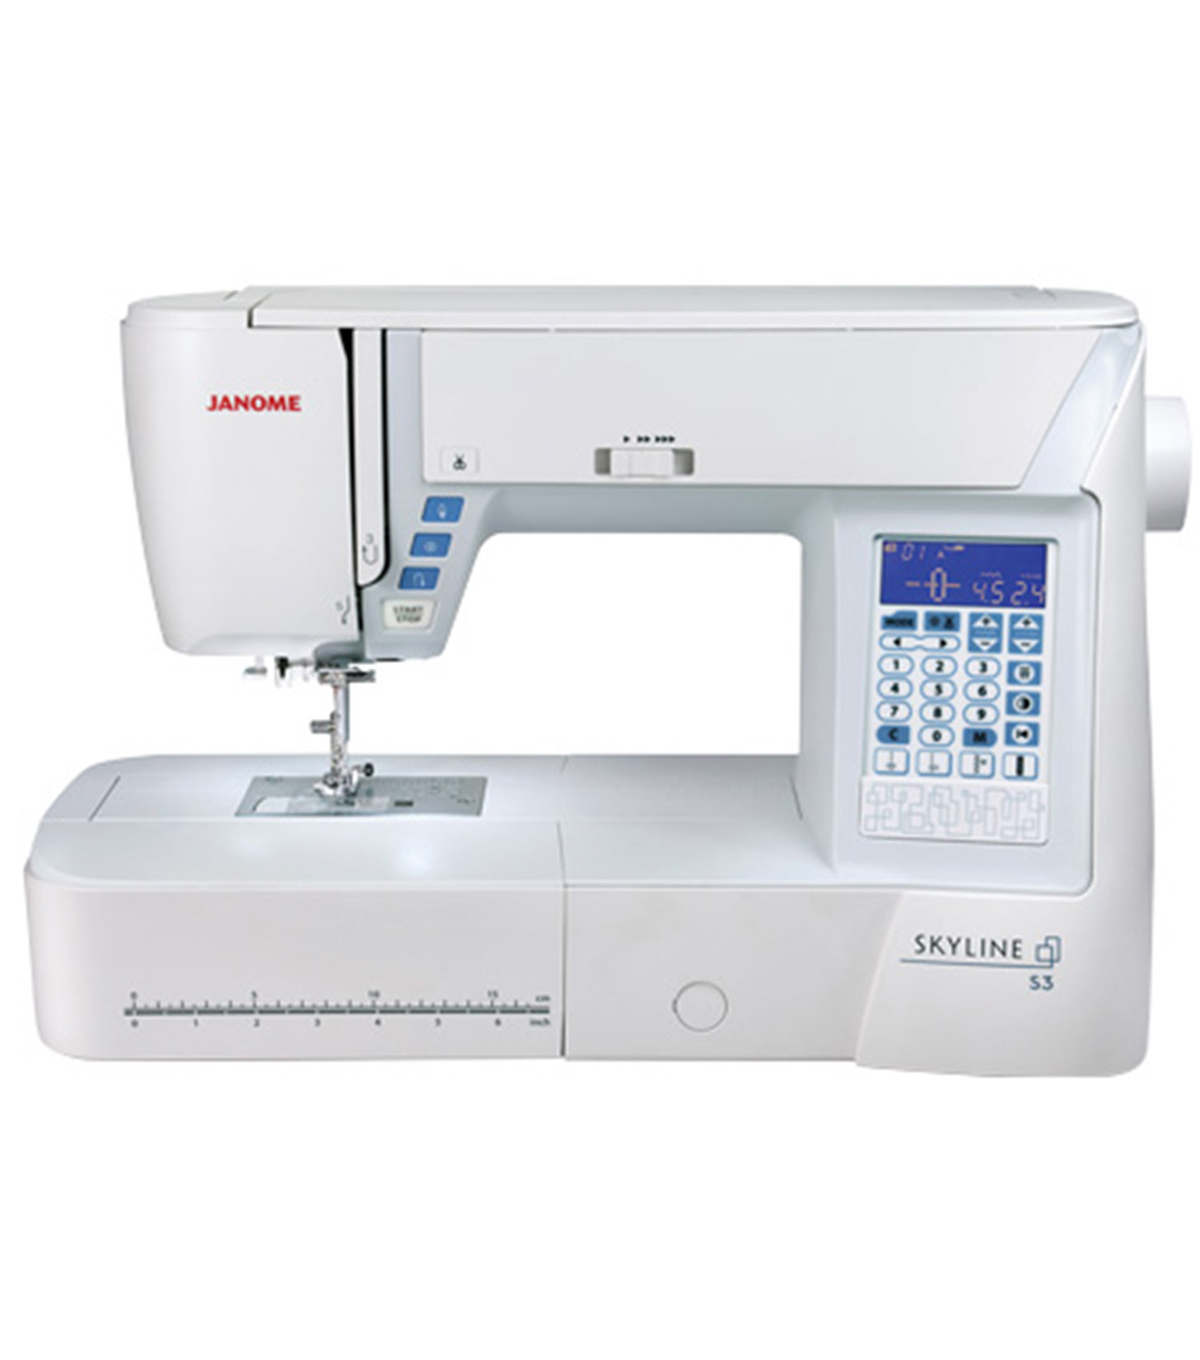 Janome Skyline S3 Sewing & Quilting Machine